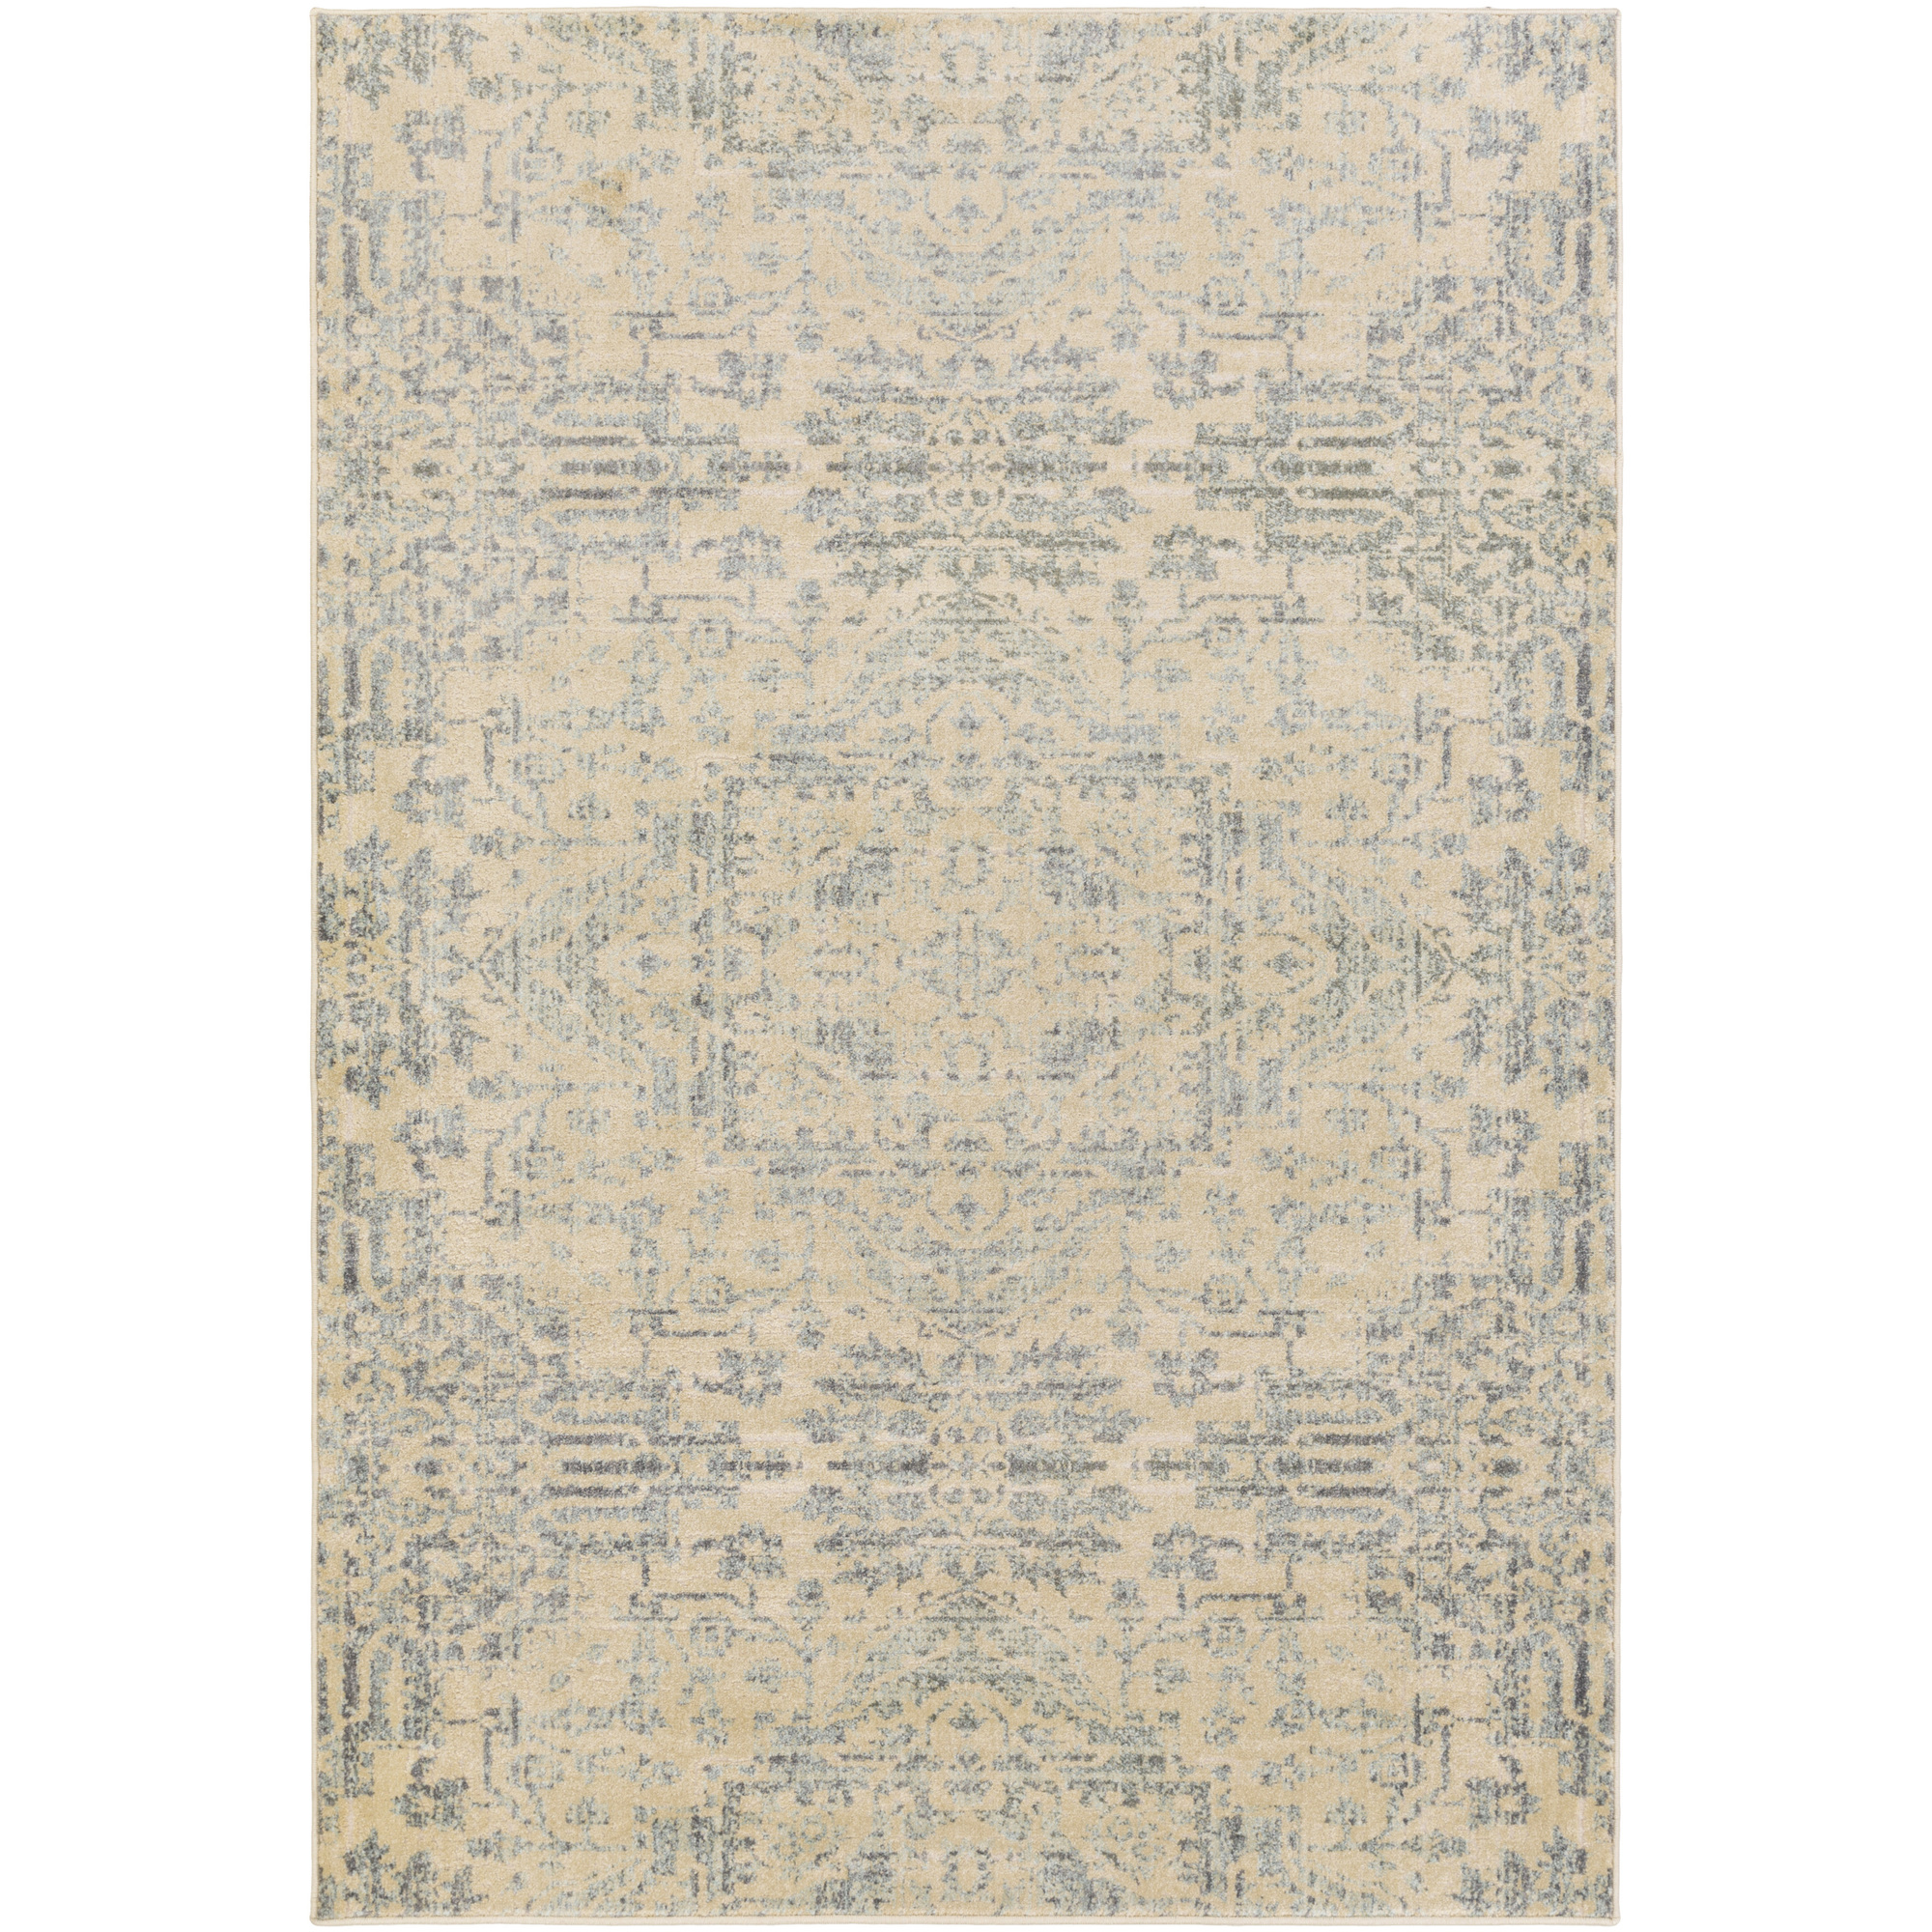 "Art of Knot Nola 5'3"" x 7'3"" Rectangular Area Rug"